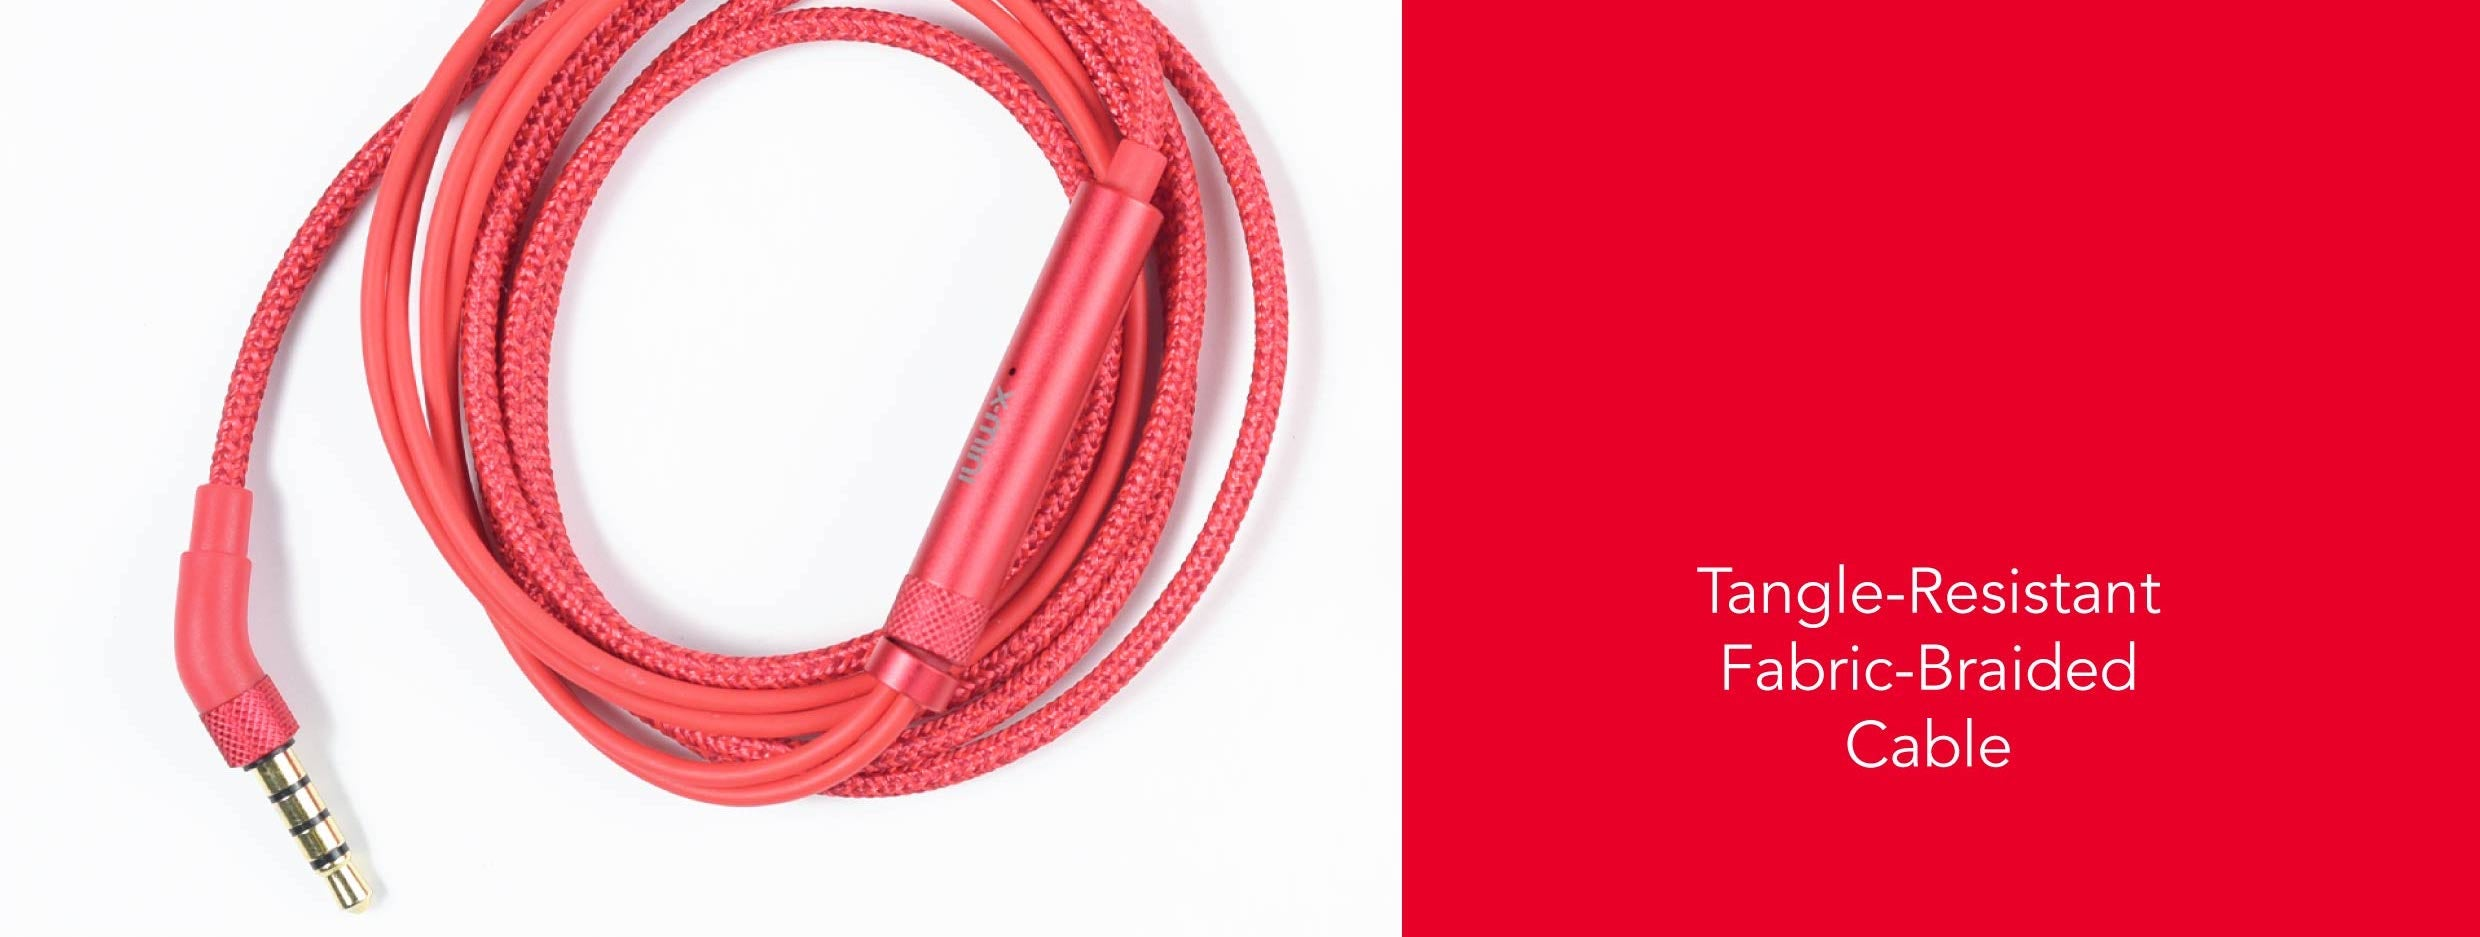 X-mini-Xtlas-Full-Bodied-Wired-Xoundbuds-Hi-Res-Audio-Tangle-Resistant-Fabric-Braided-Cable